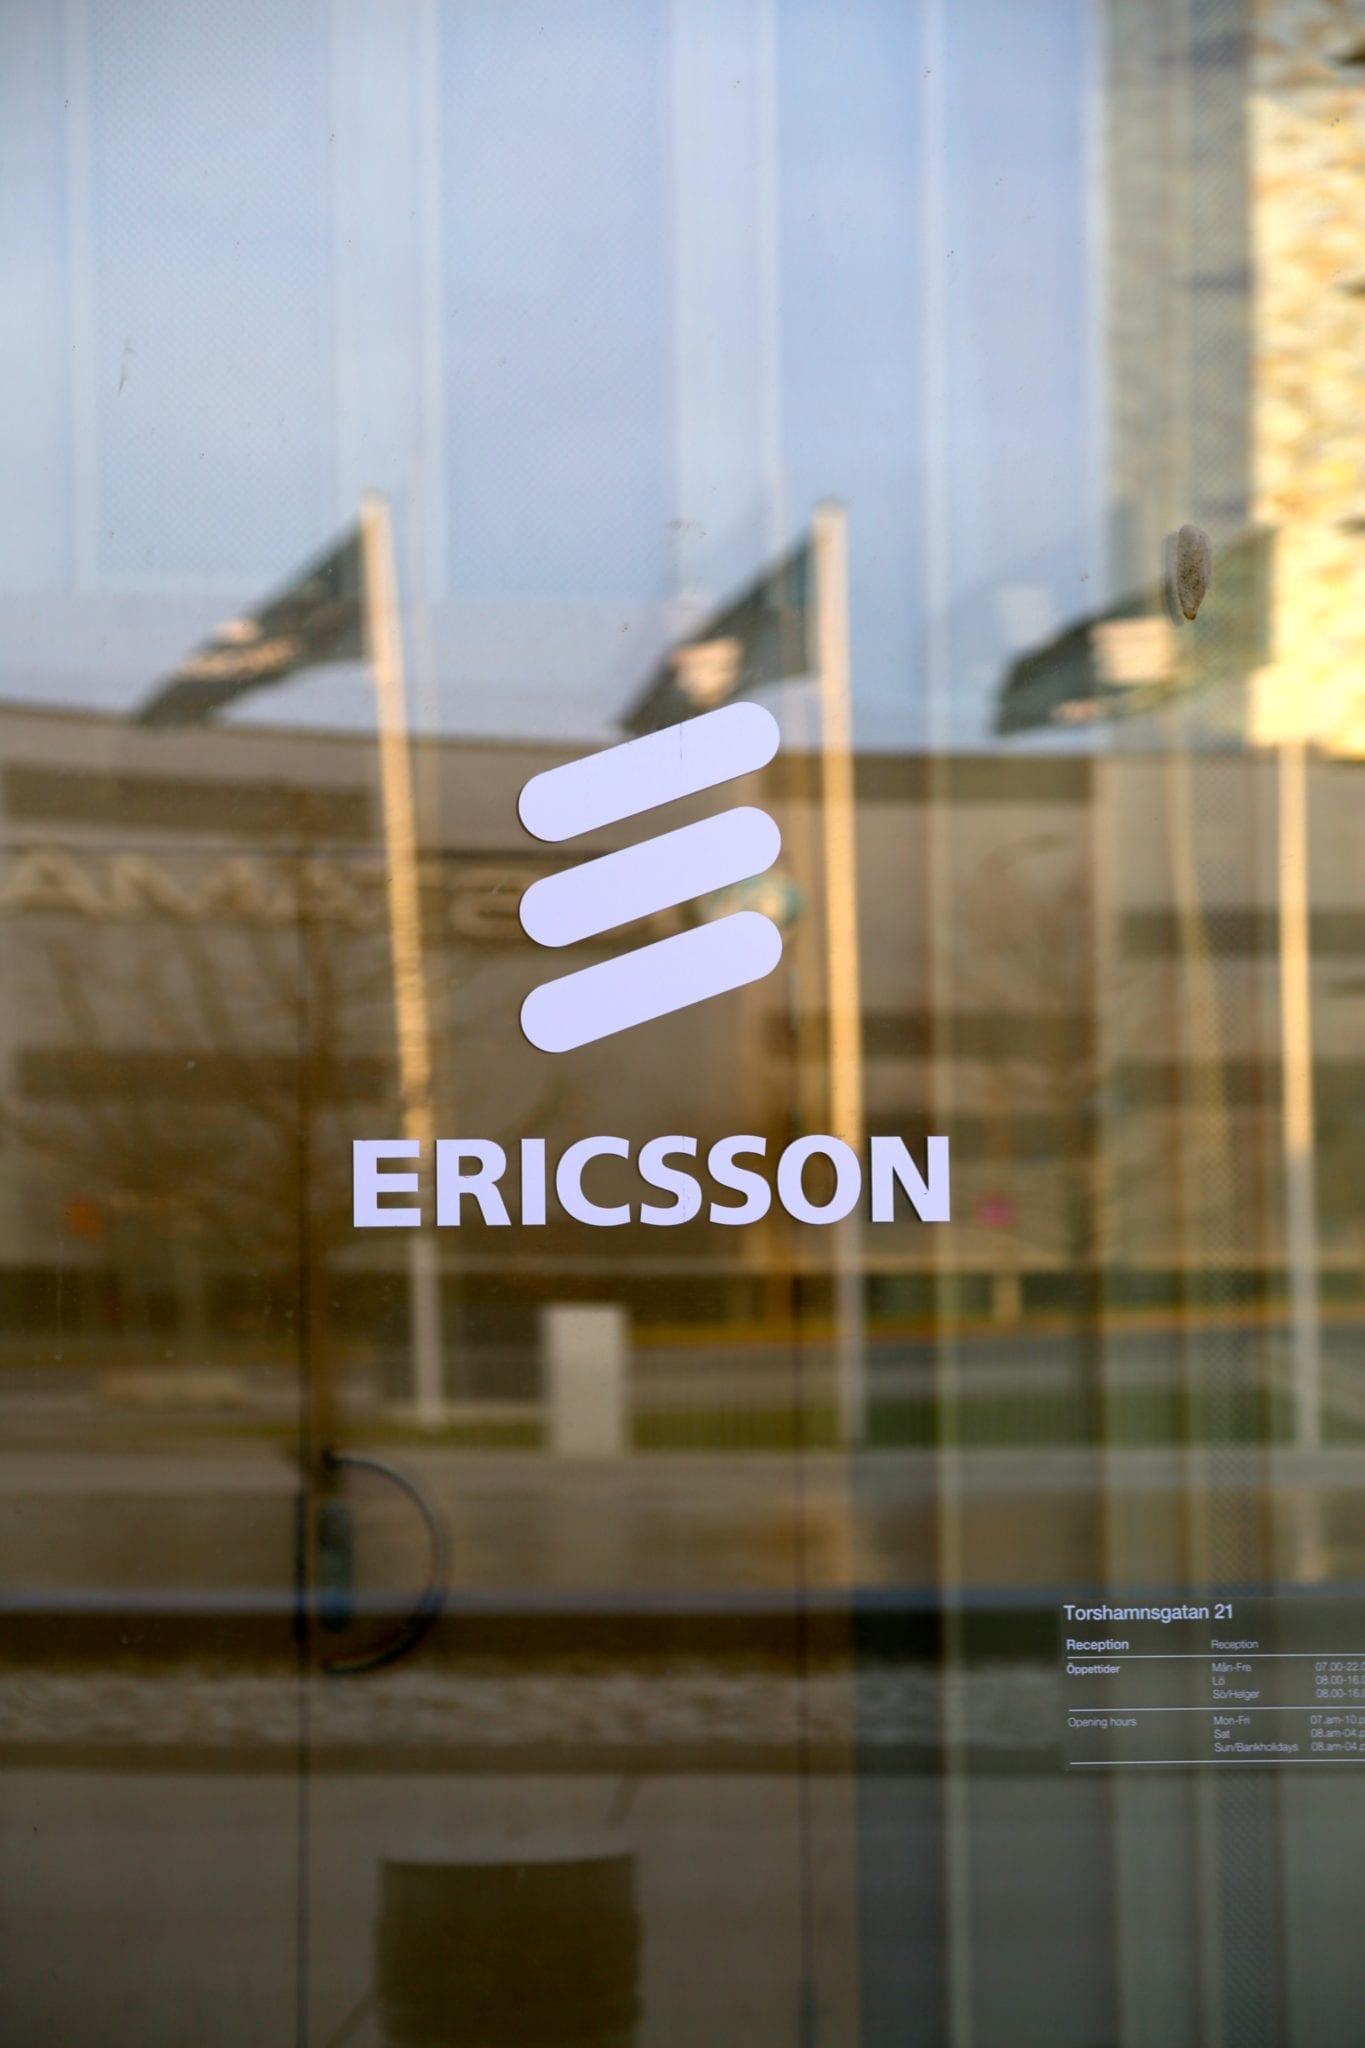 Cellular IoT to outgun 5G, says Ericsson, offering early snapshot of